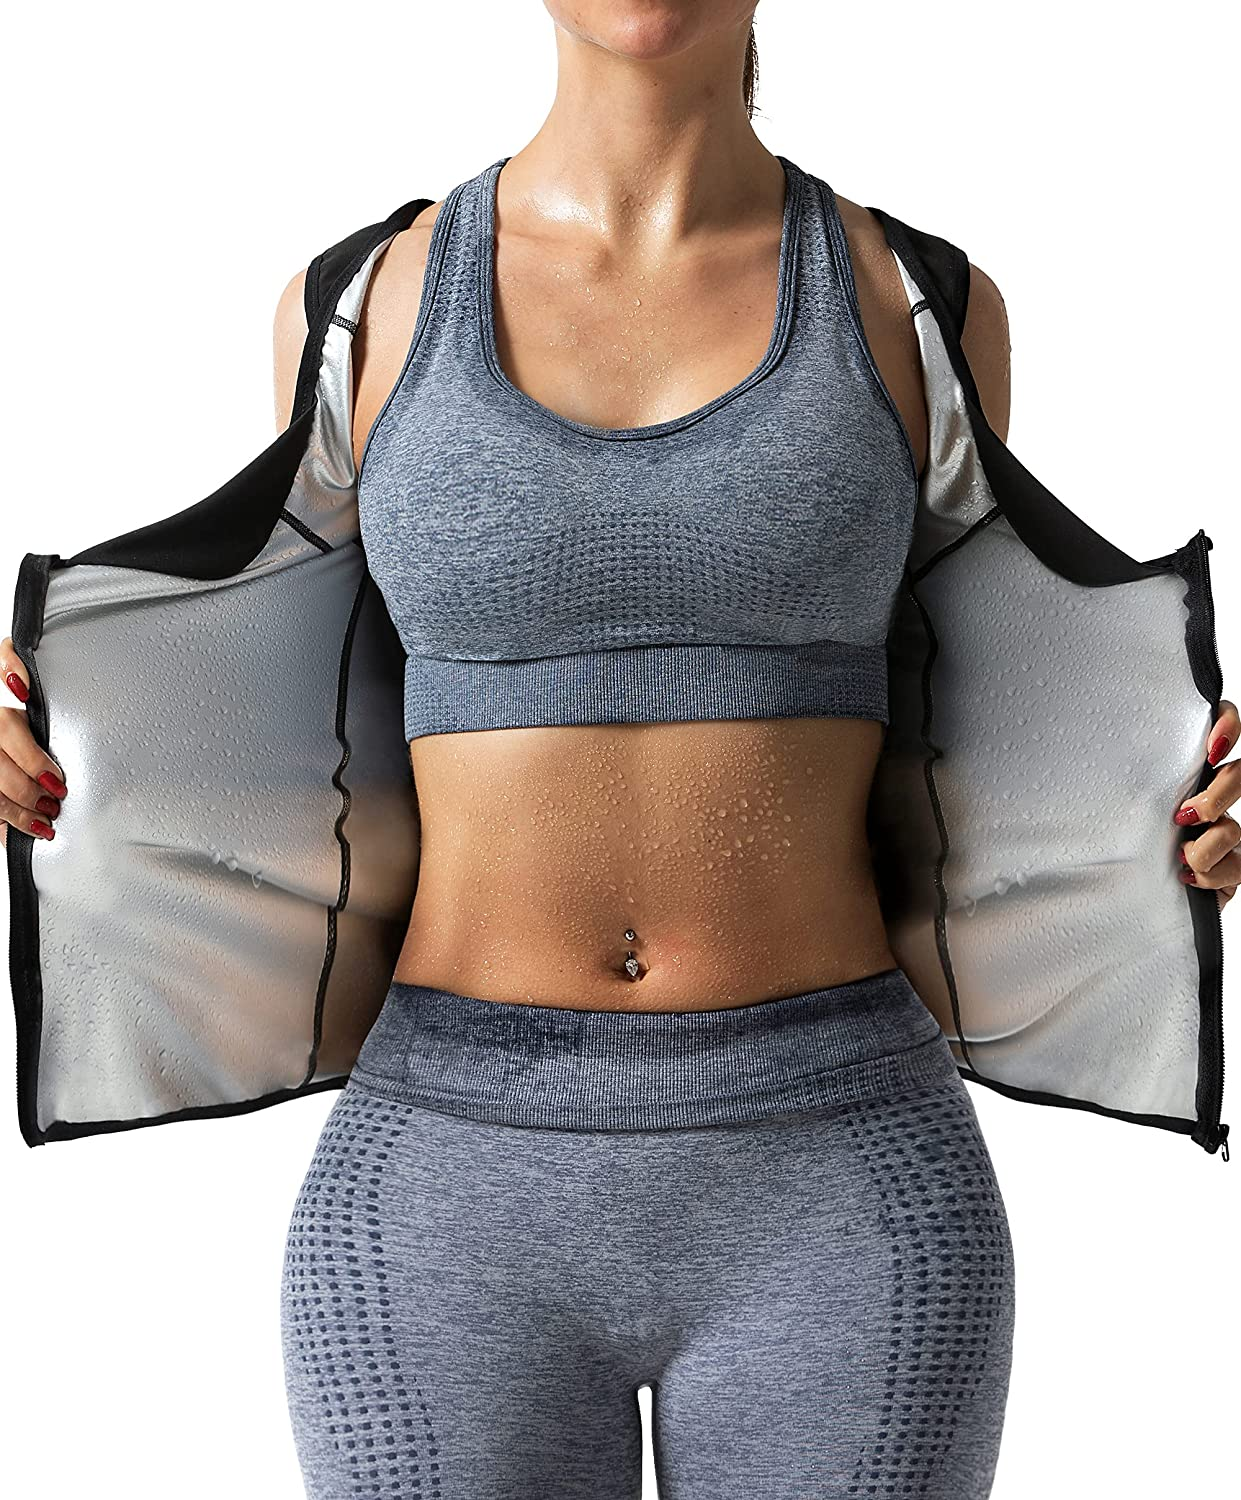 DYUAI Sauna 2021 Sweat Vest for Women Trapping Workout Top Heat Excellent Tank